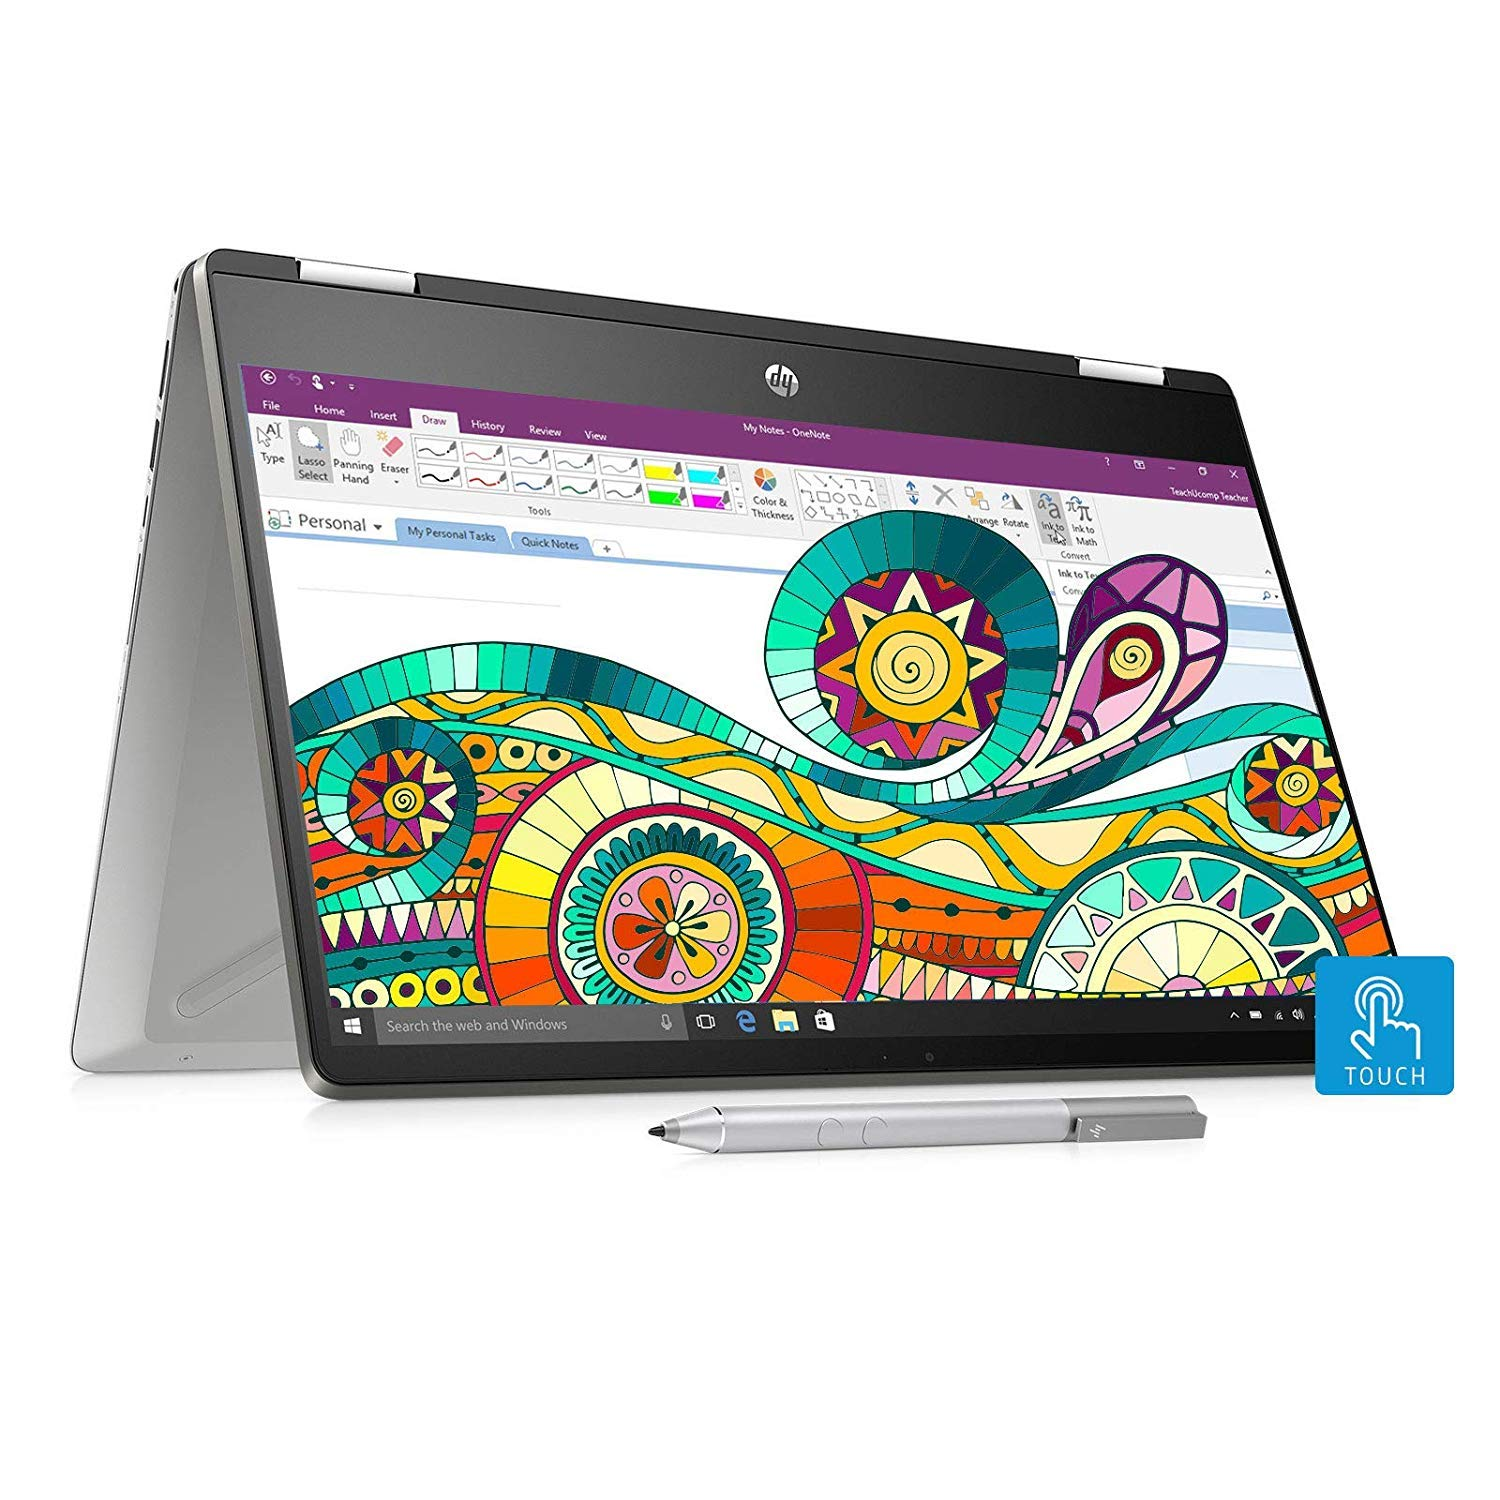 HP Pavilion i7 10th Gen Image